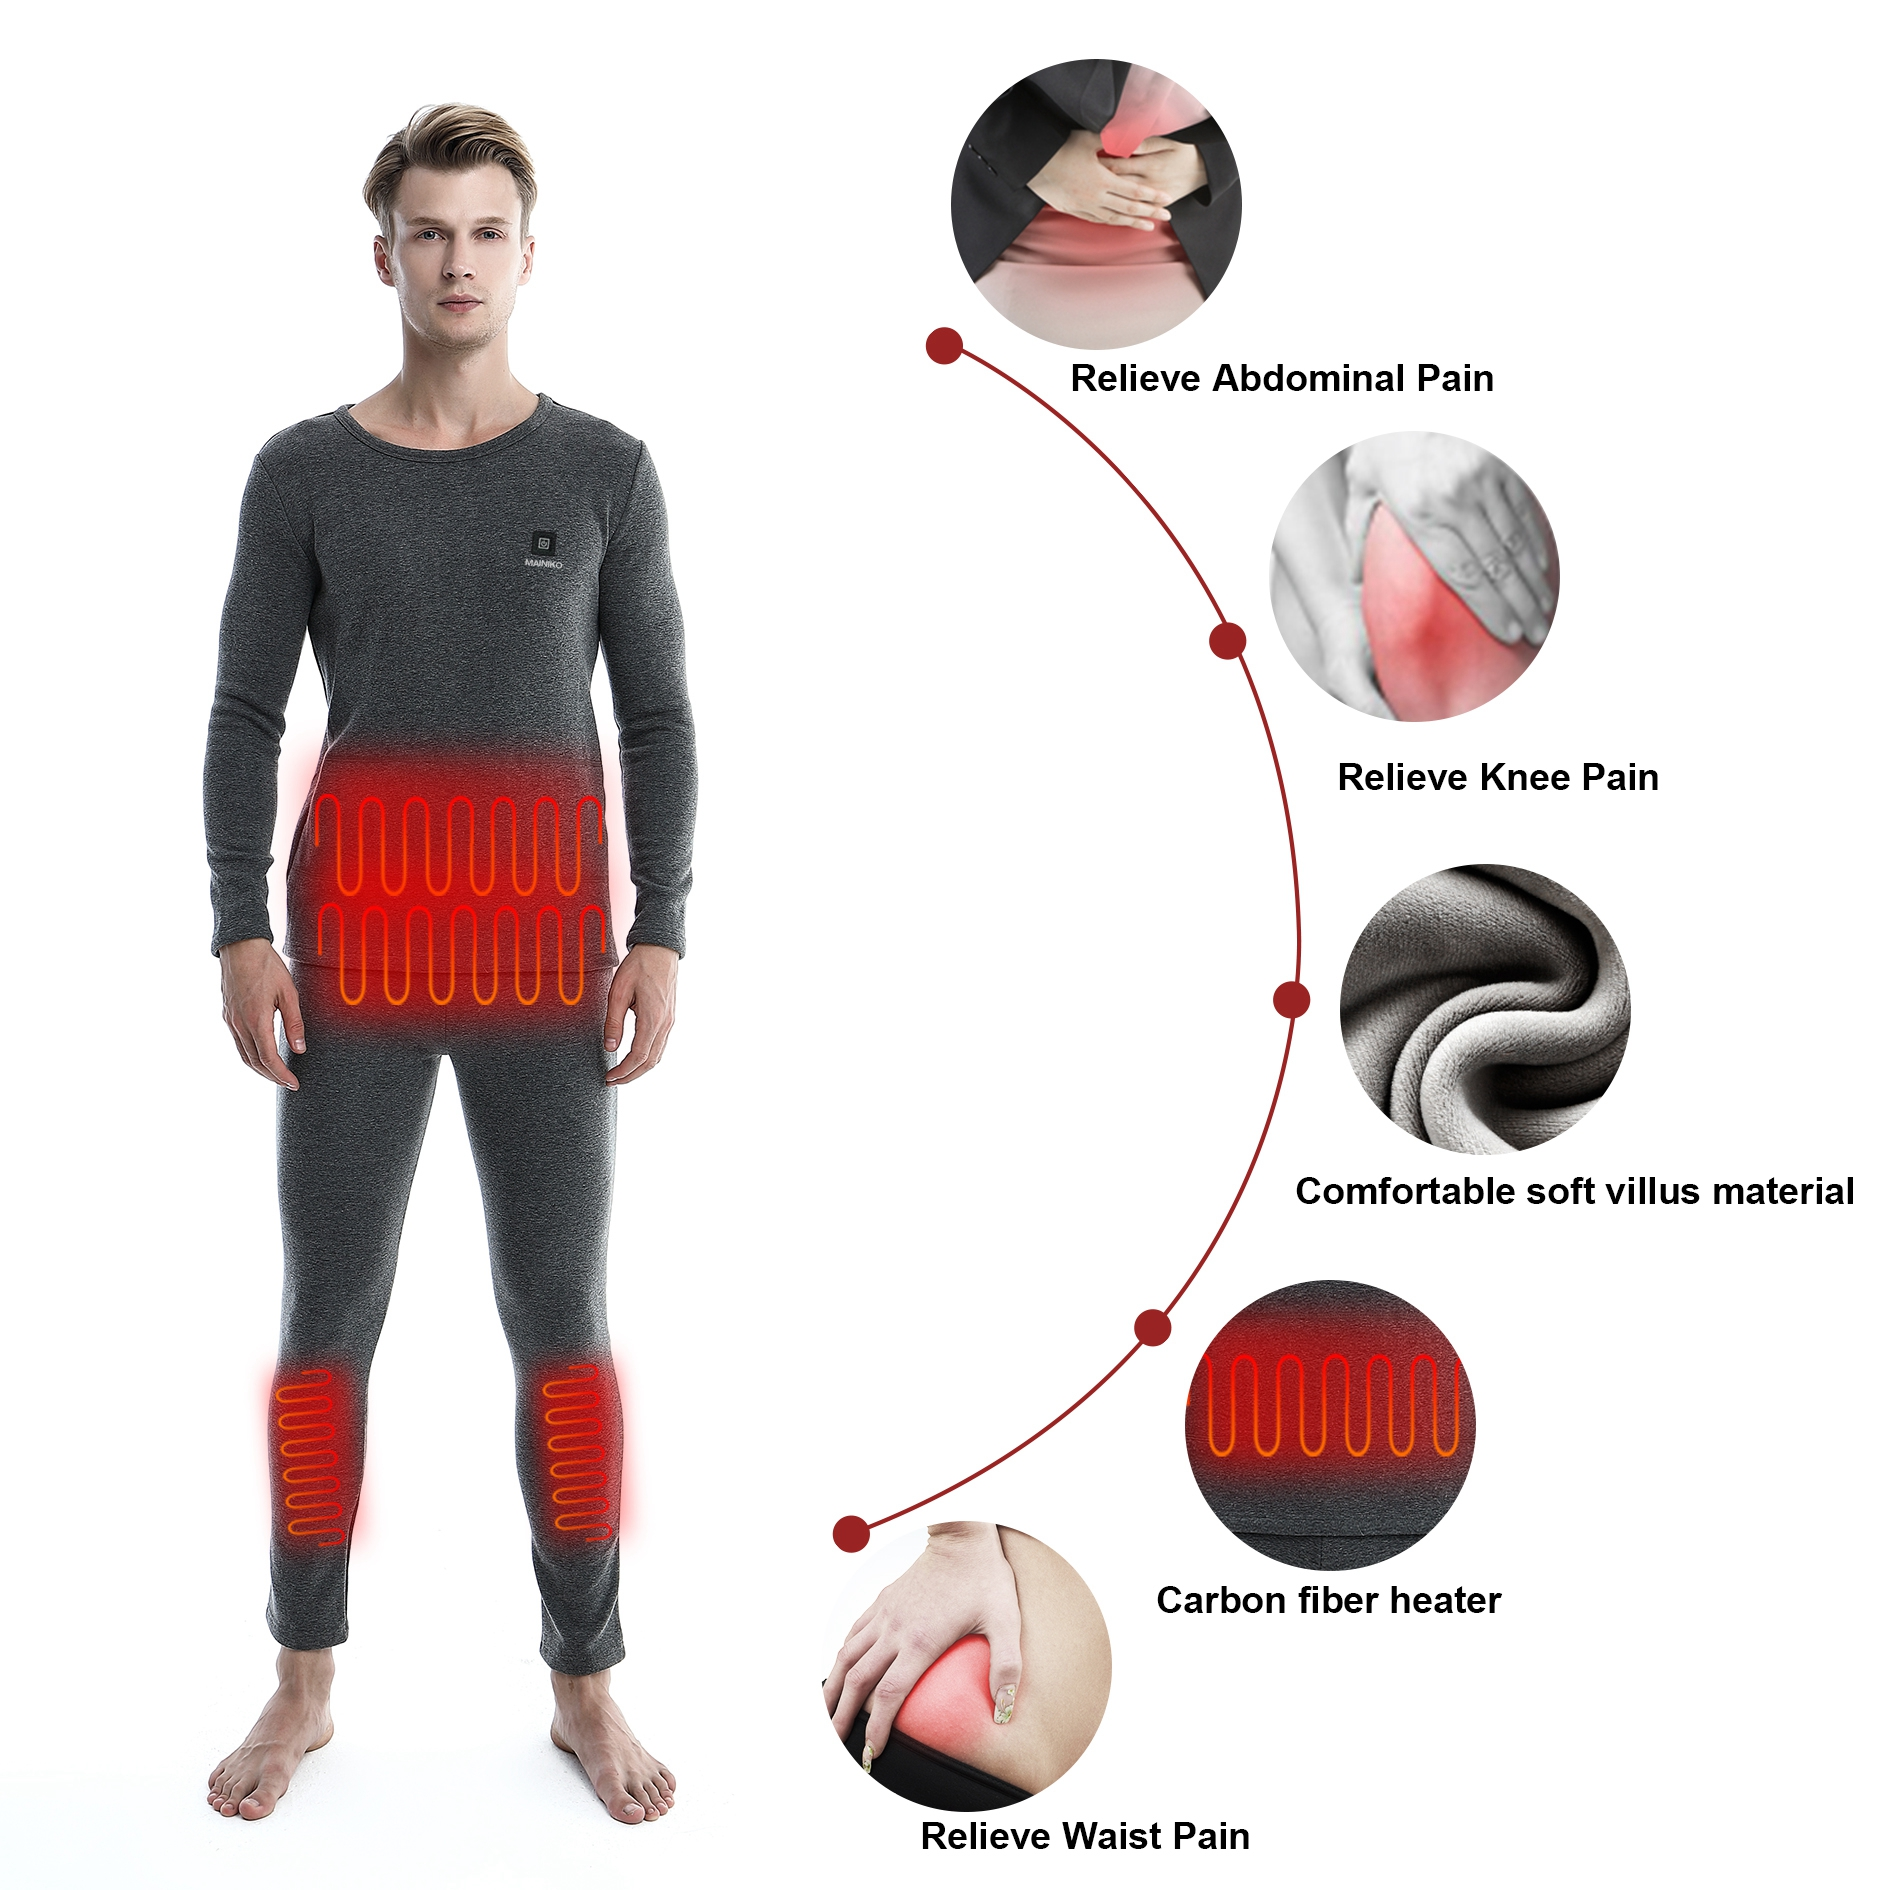 100 Cotton Winter Usb Electric Battery Operated Breathable Heated Long Johns